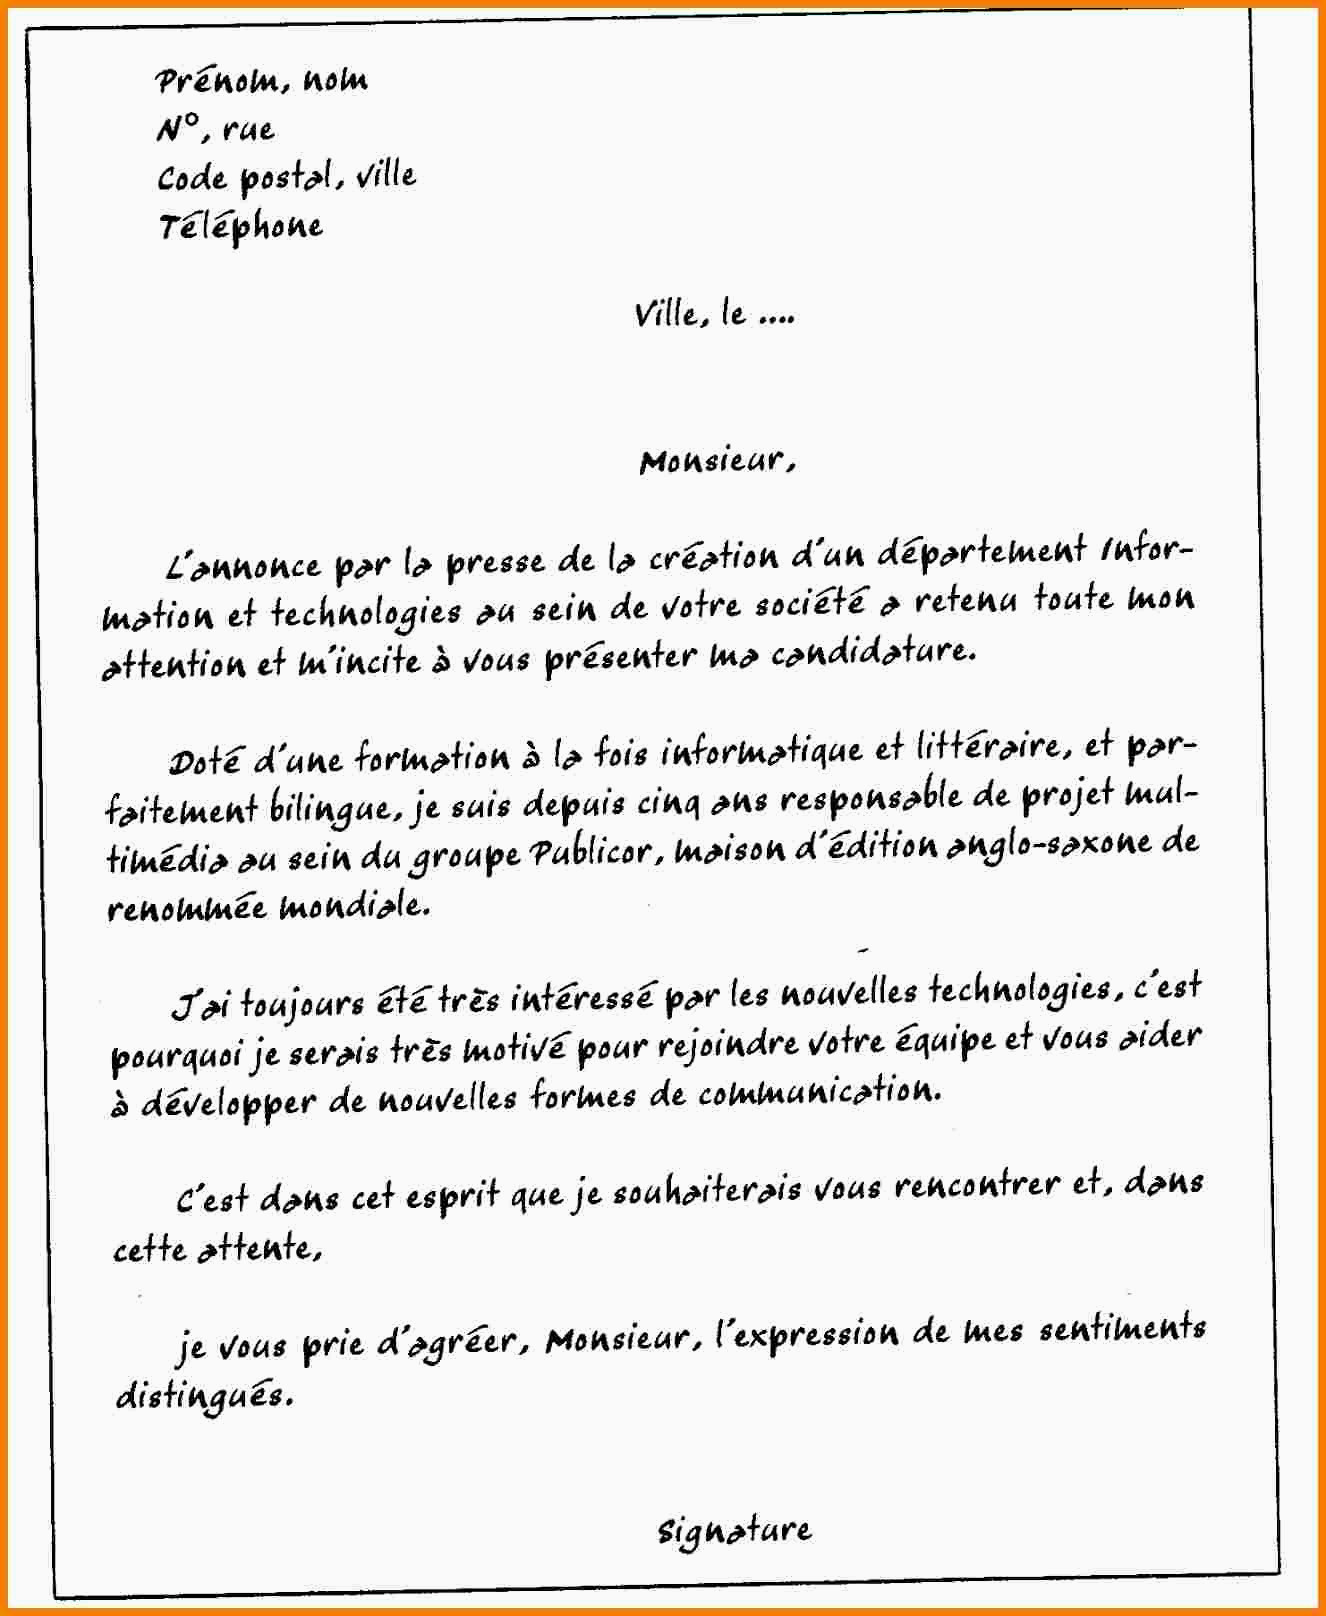 Lettre De Motivation Manutentionnaire Modele Lettre De Motivation Candidature Spontanee Manutention Best